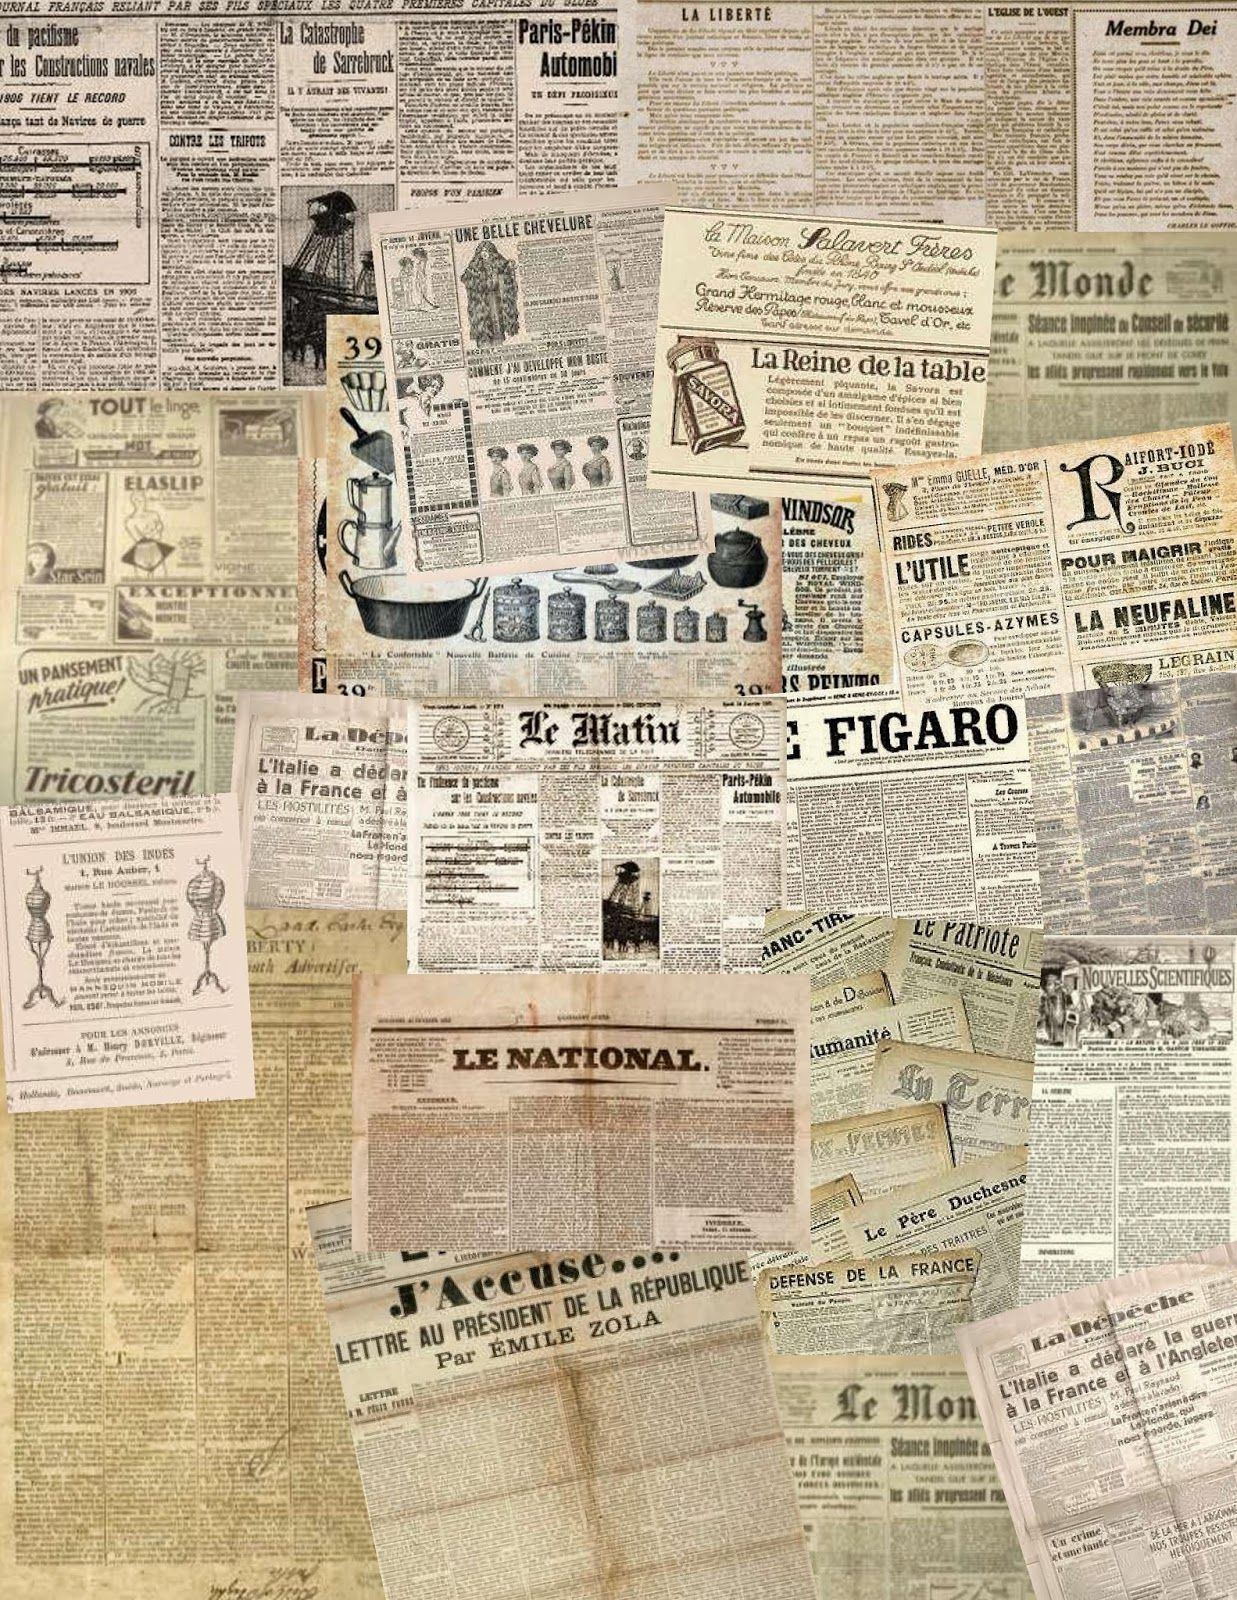 These collage sheets of old newspapers, which might be useful for attic wallpaper, lining trunks, suitcases and old cupboards (and probably ...